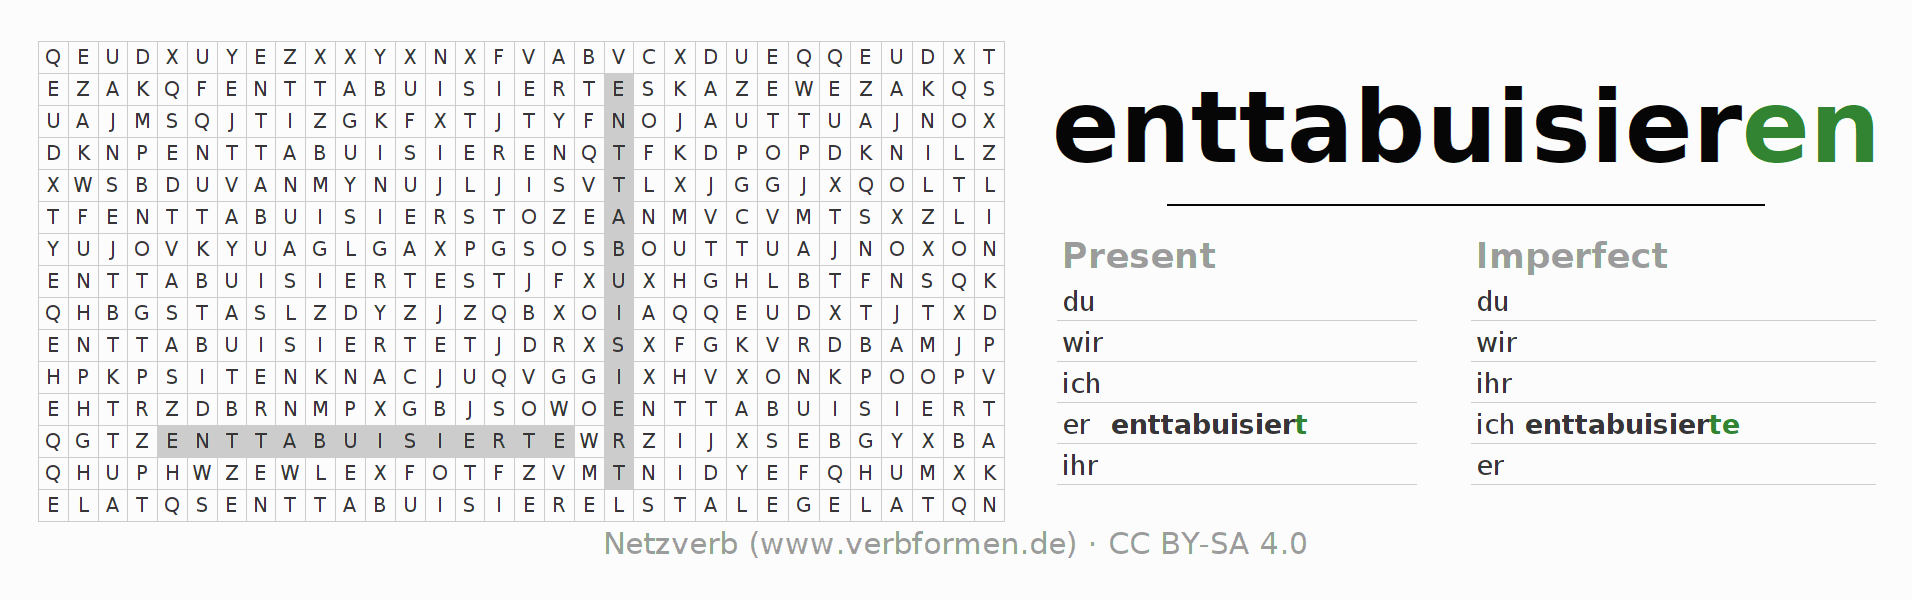 Word search puzzle for the conjugation of the verb enttabuisieren